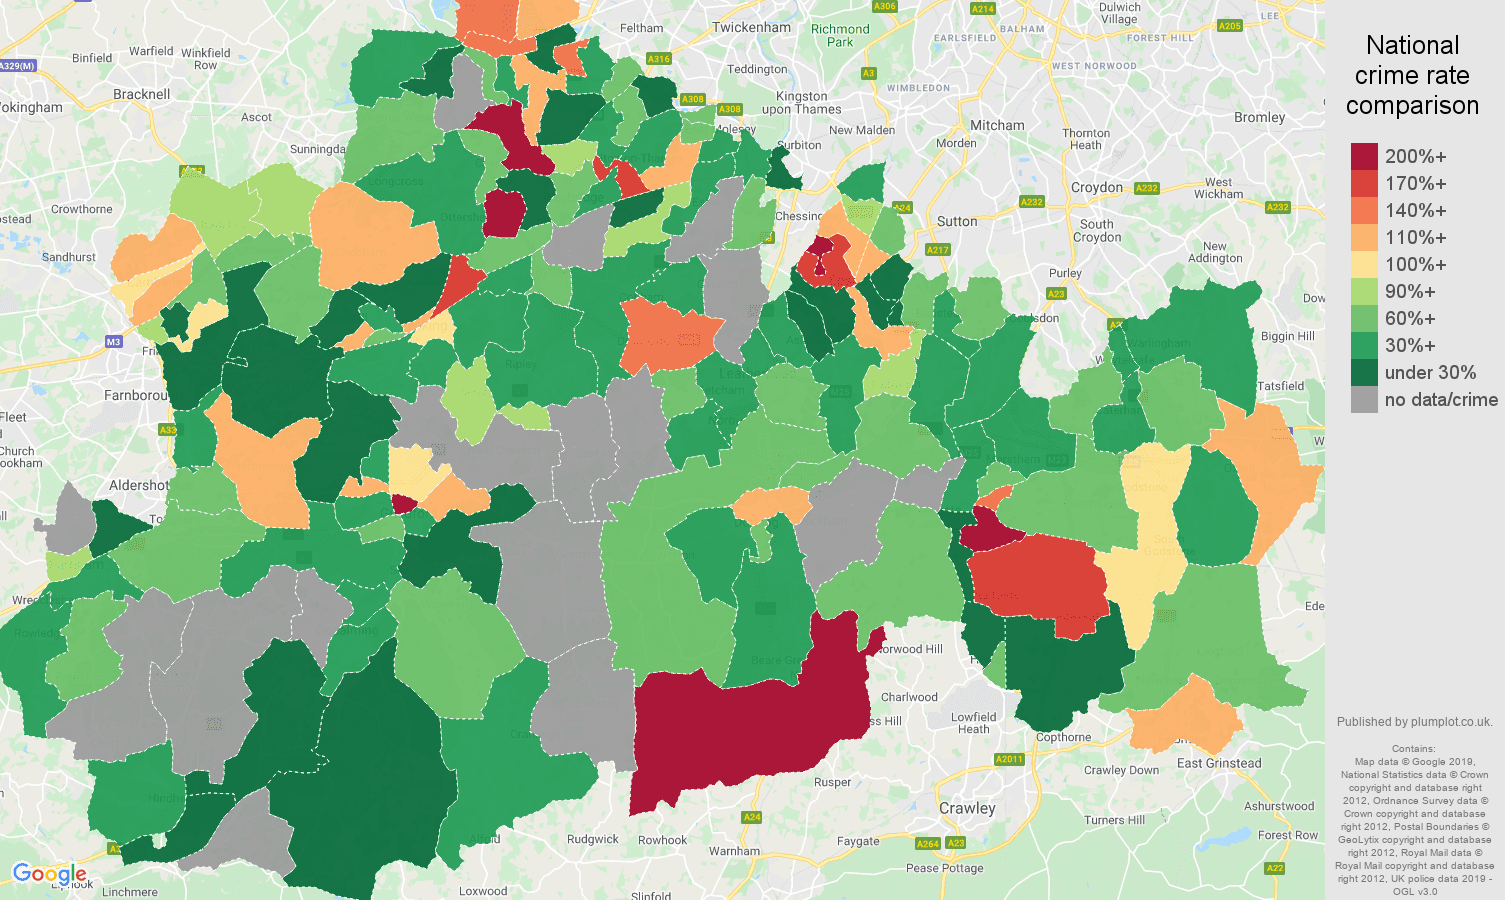 Surrey possession of weapons crime rate comparison map